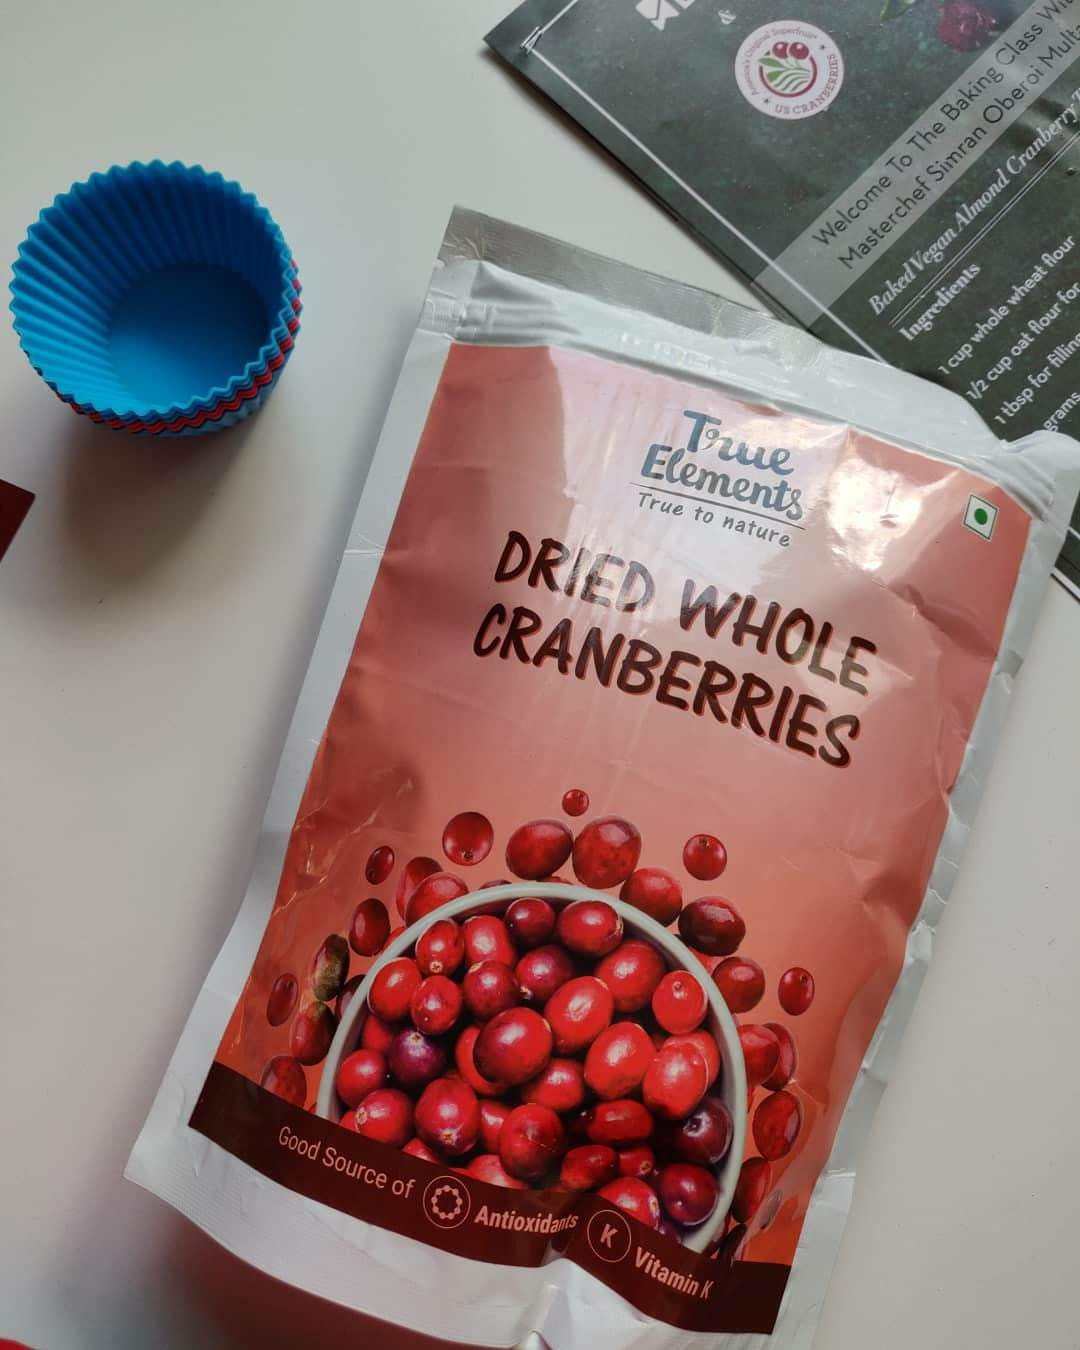 Munch Your Way To Health With Cranberries, True Elements